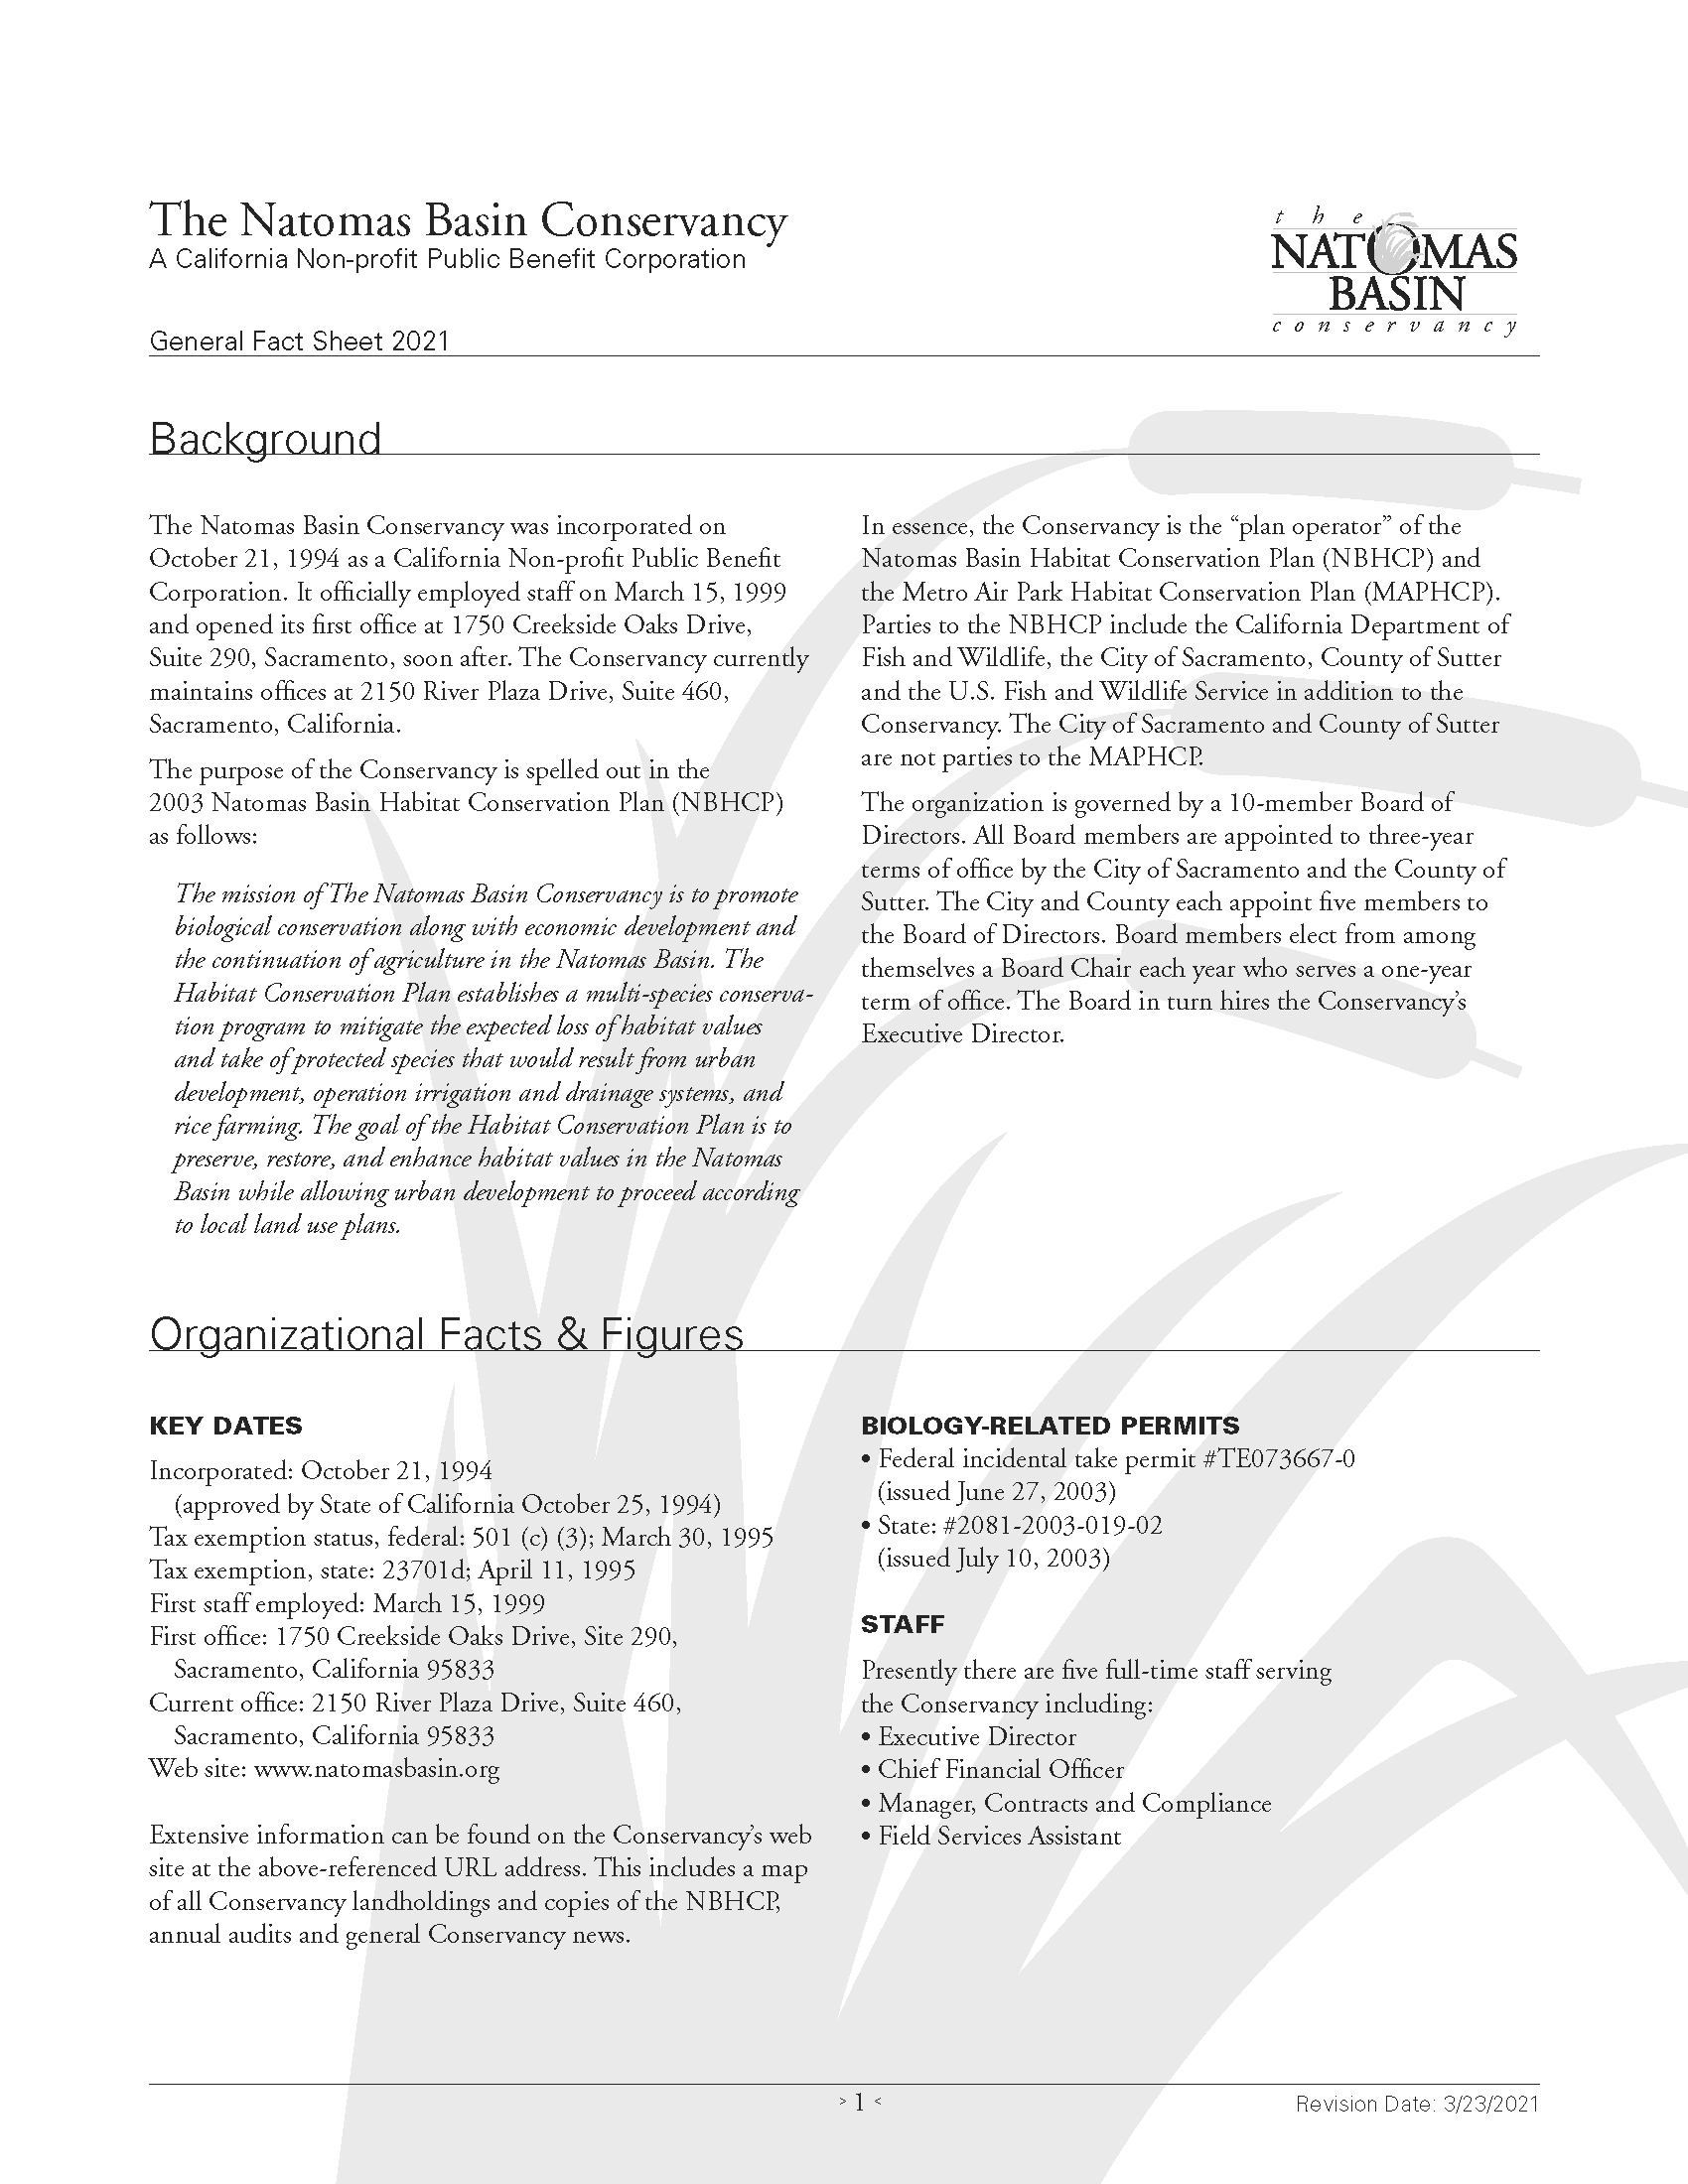 Download the Natomas Basin Conservancy's General Fact Sheet in PDF format.